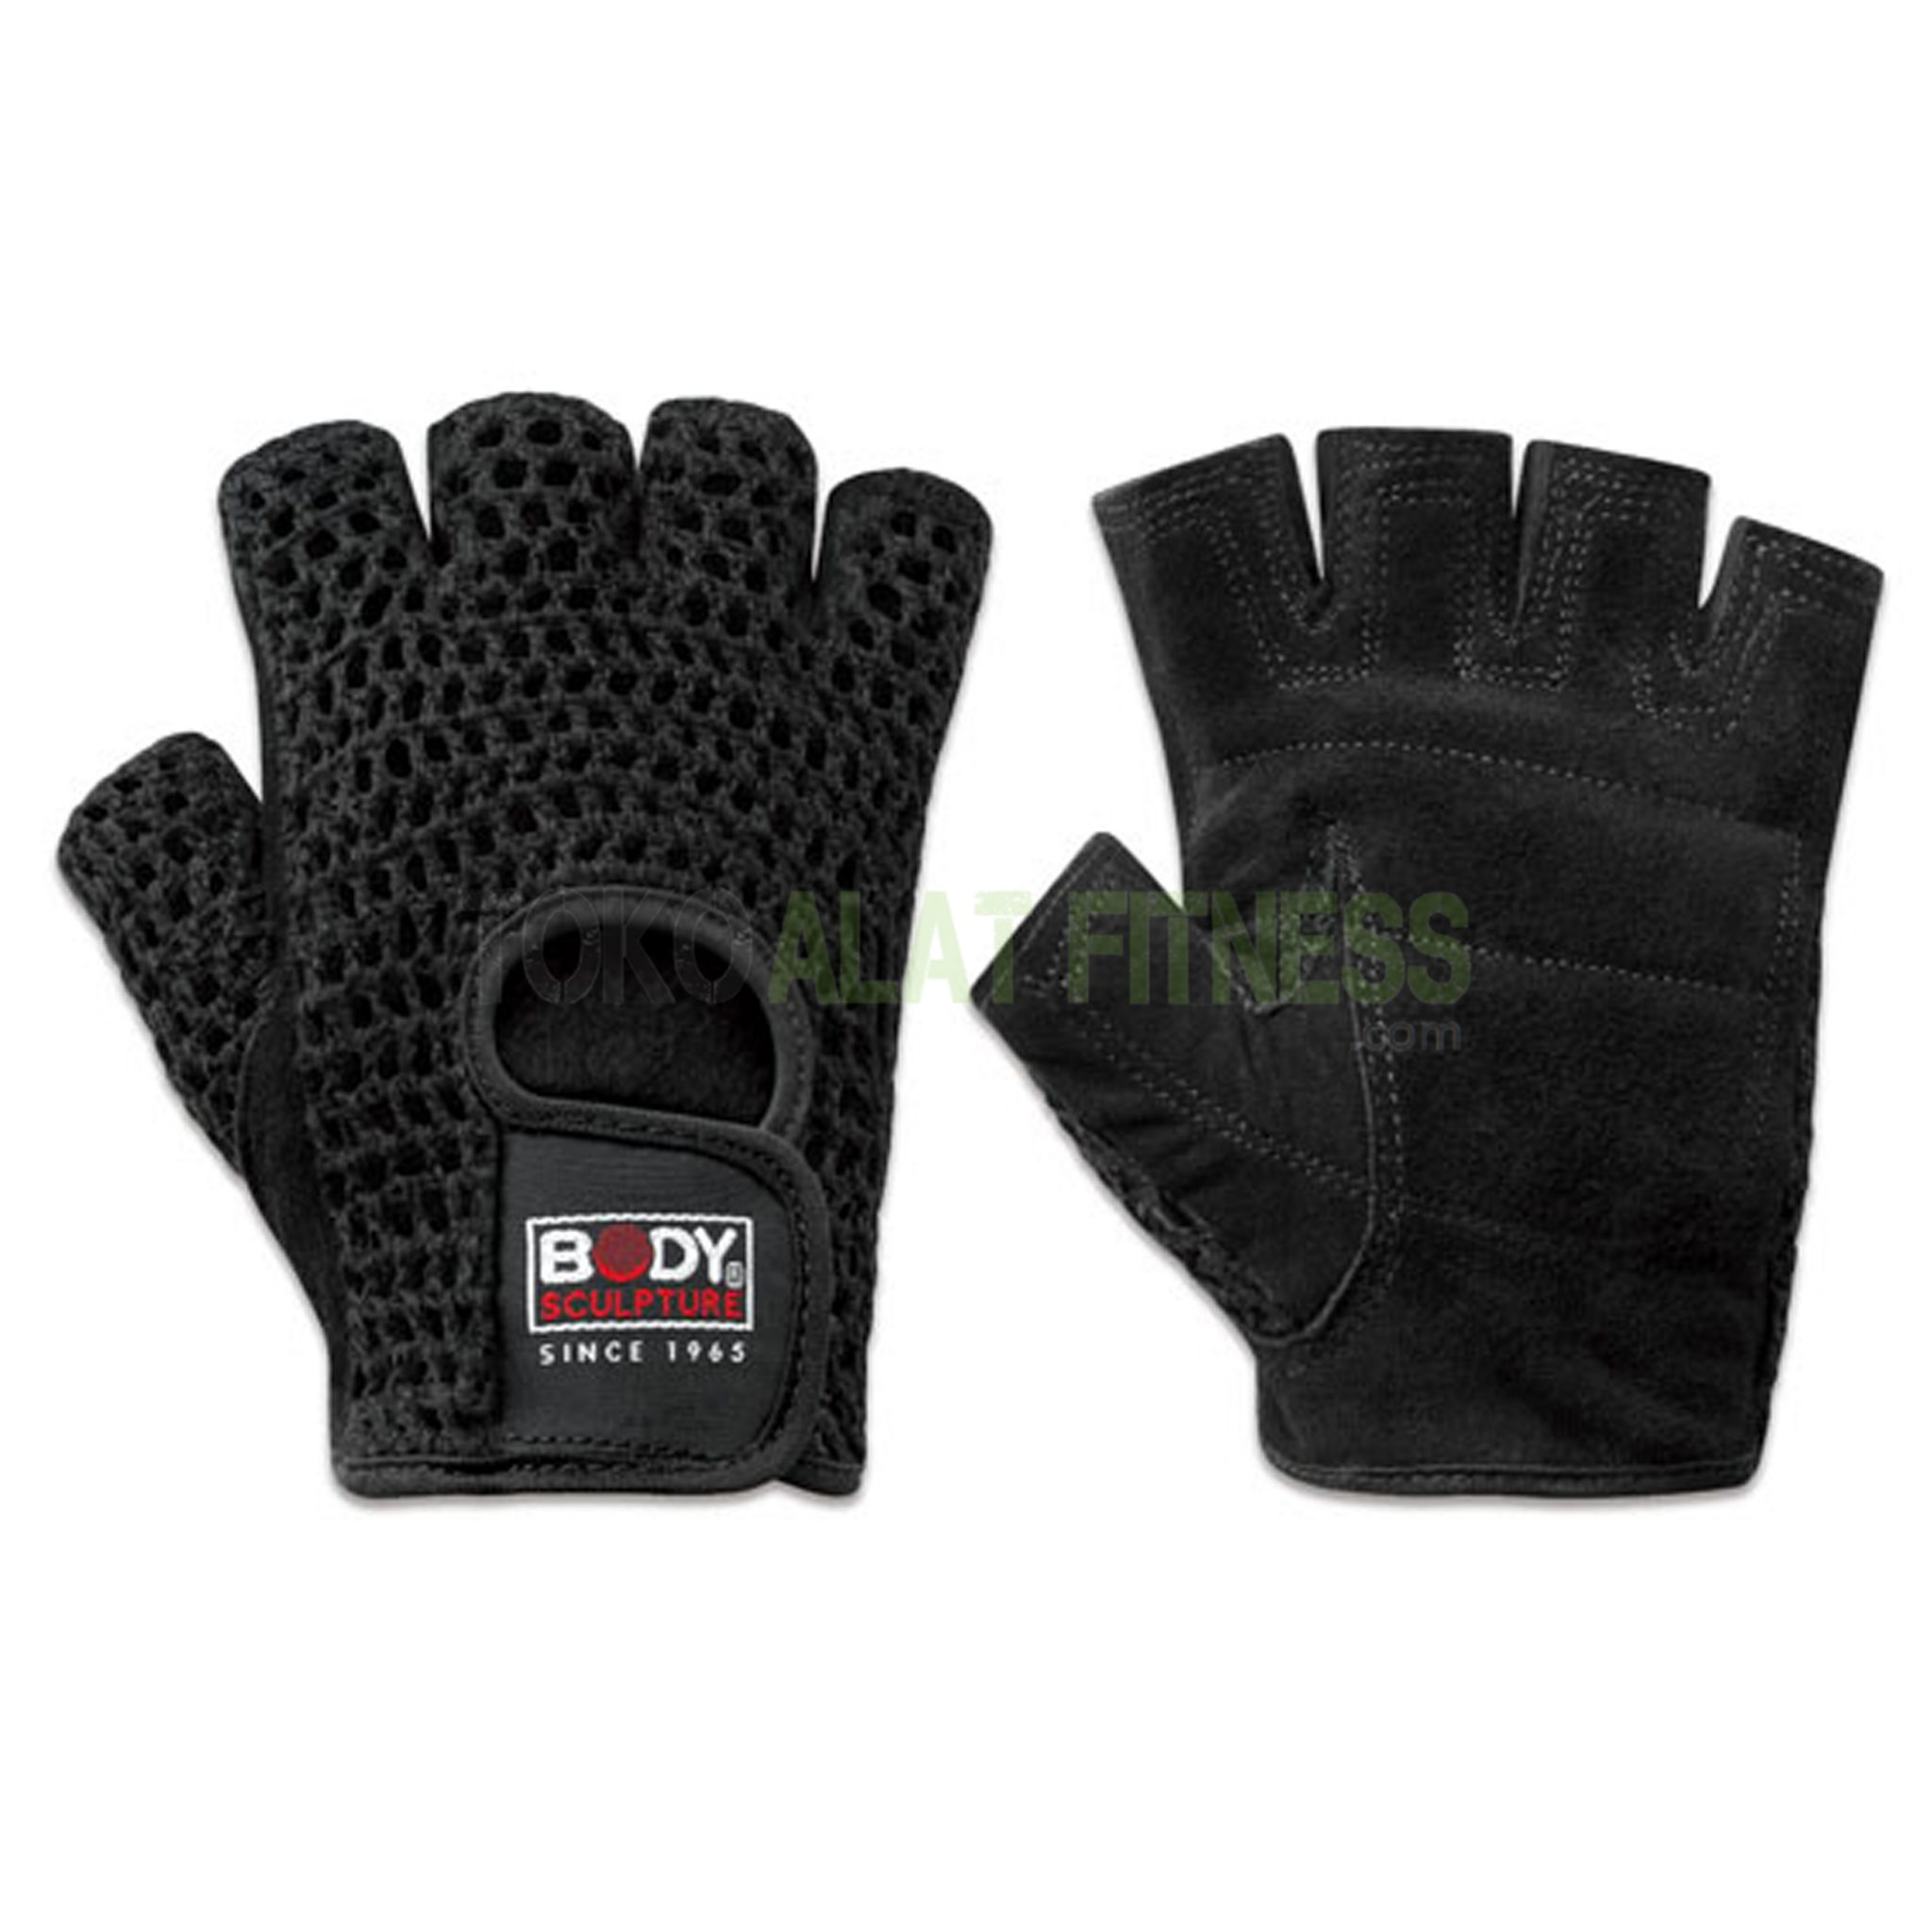 leather fitness gloves net wtm - Leather Fitness Gloves Nets S Body Sculpture